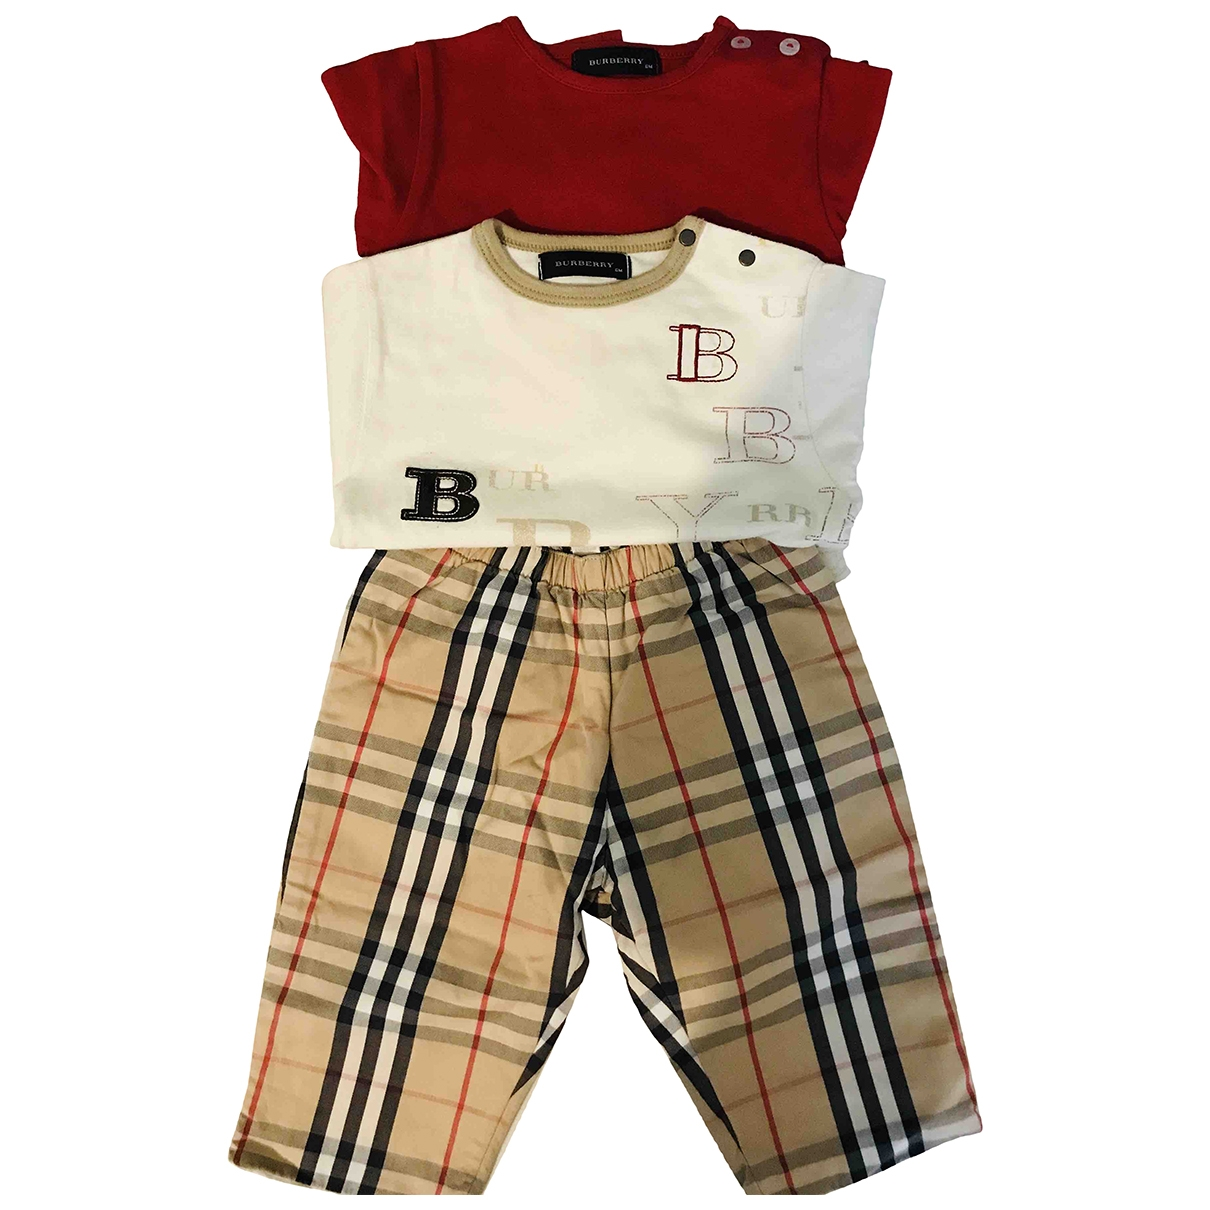 Burberry \N Multicolour Cotton Outfits for Kids 6 months - up to 67cm FR